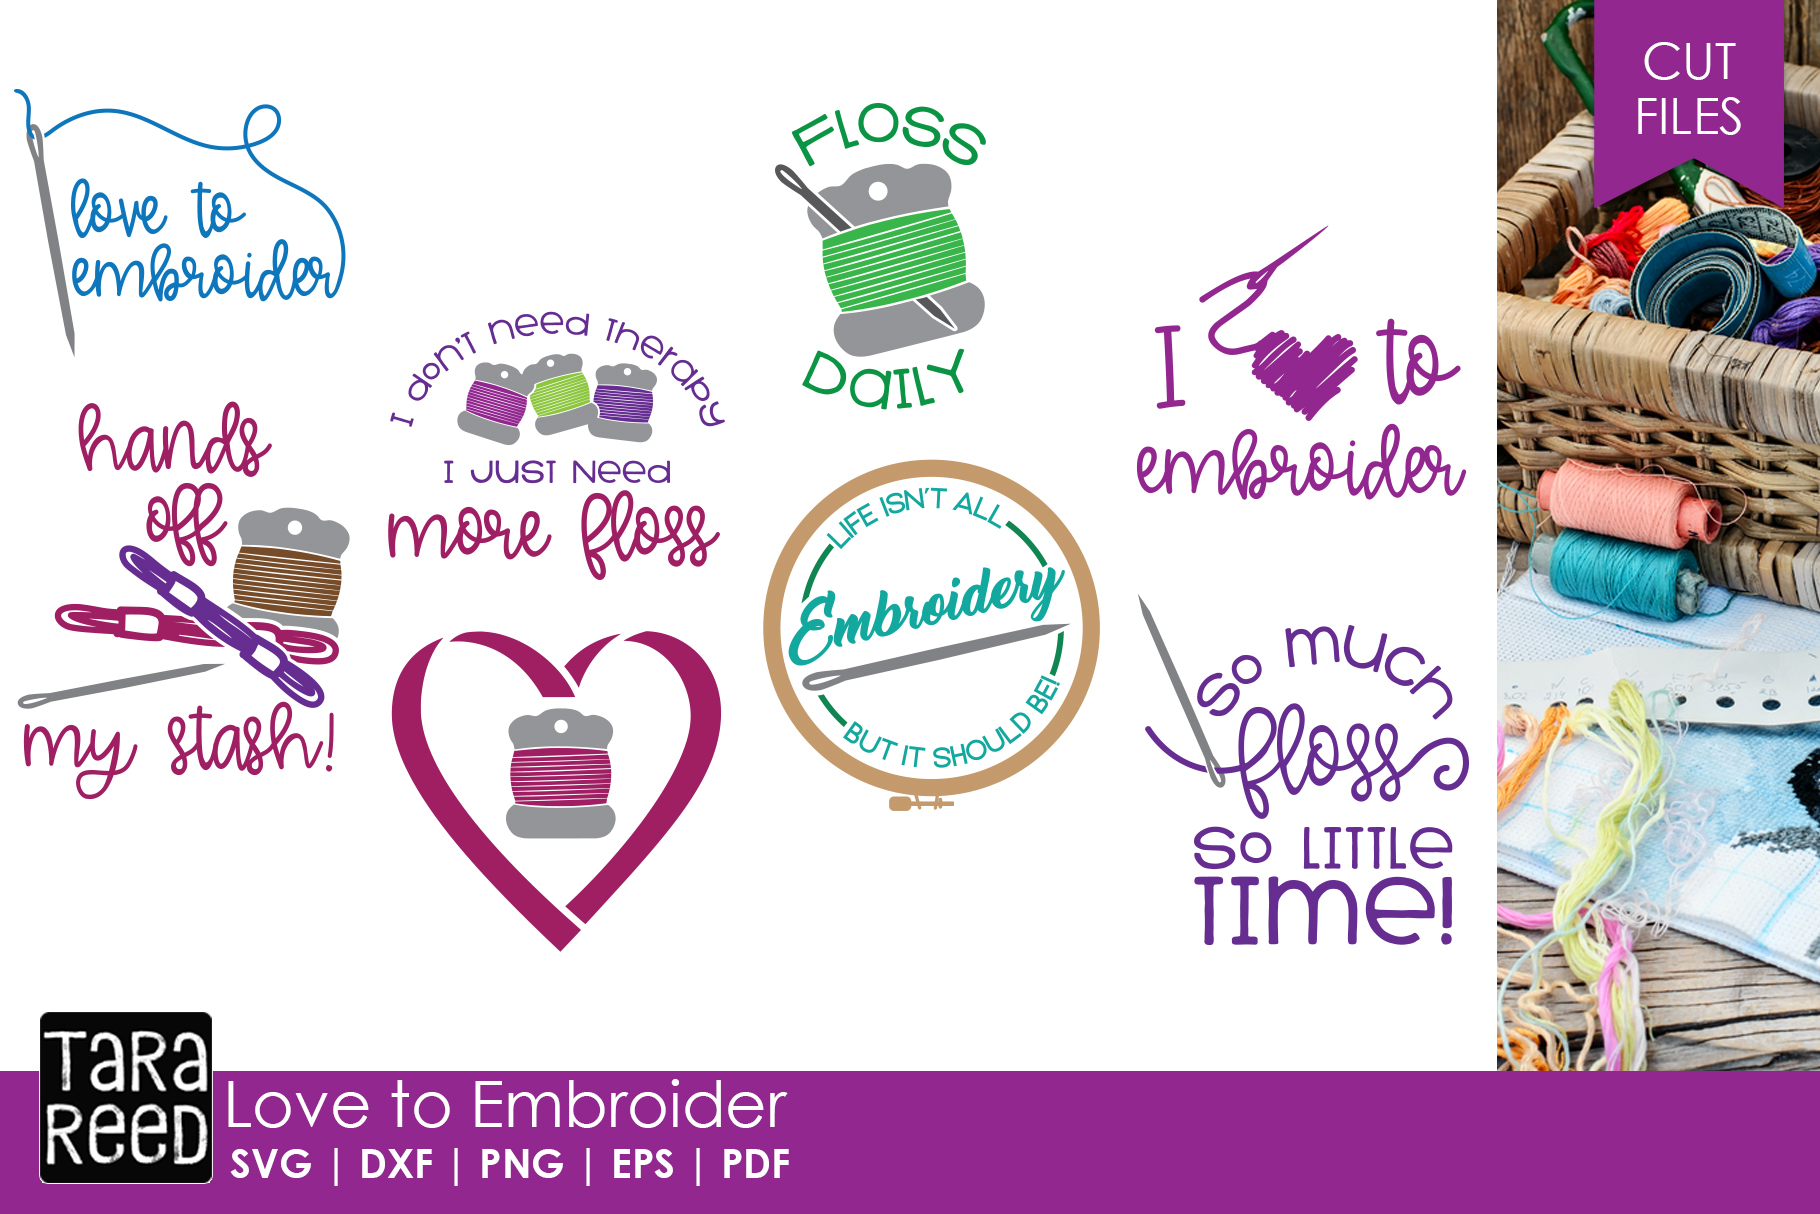 Love to Embroider - Embroidery SVG and Cut Files for Crafter example image 1